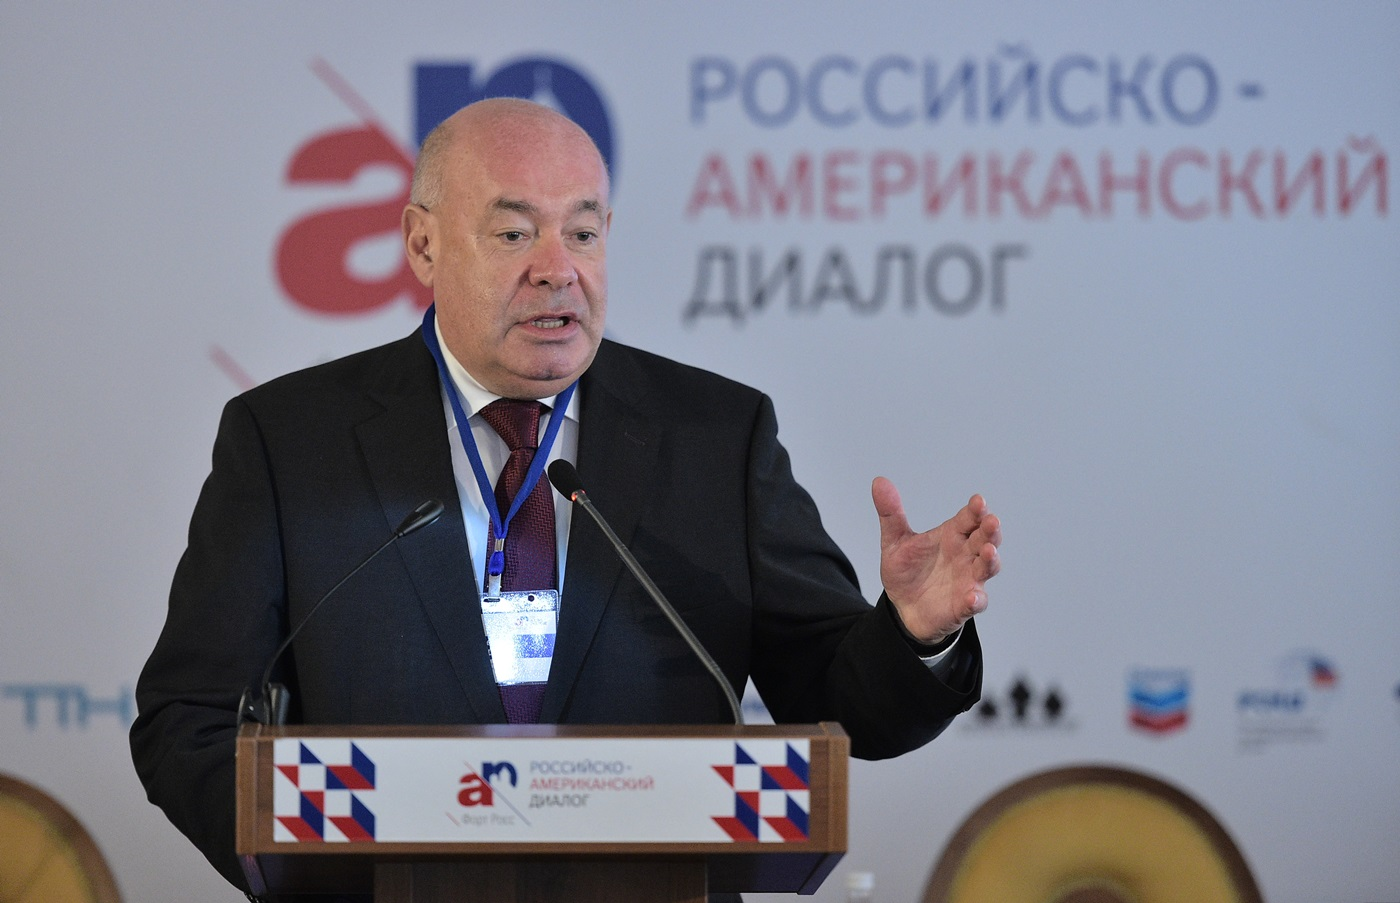 Welcome address by Mikhail Shvydkoy, Russian president's special envoy on international cultural cooperation. / Mikhail Sinitsyn